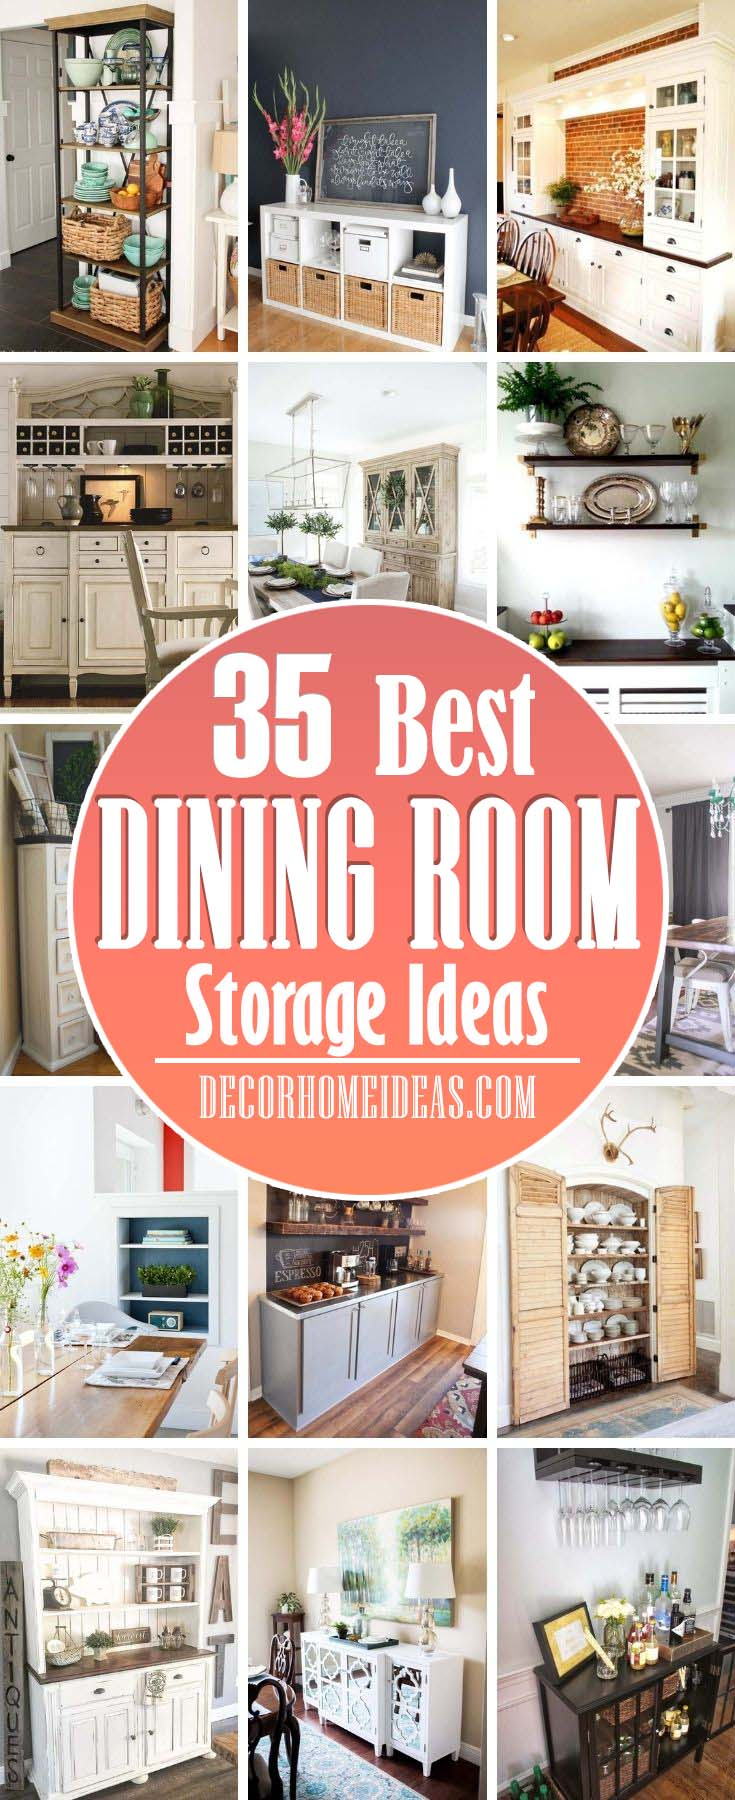 Best Dining Room Storage Ideas. Want dining room <a href=